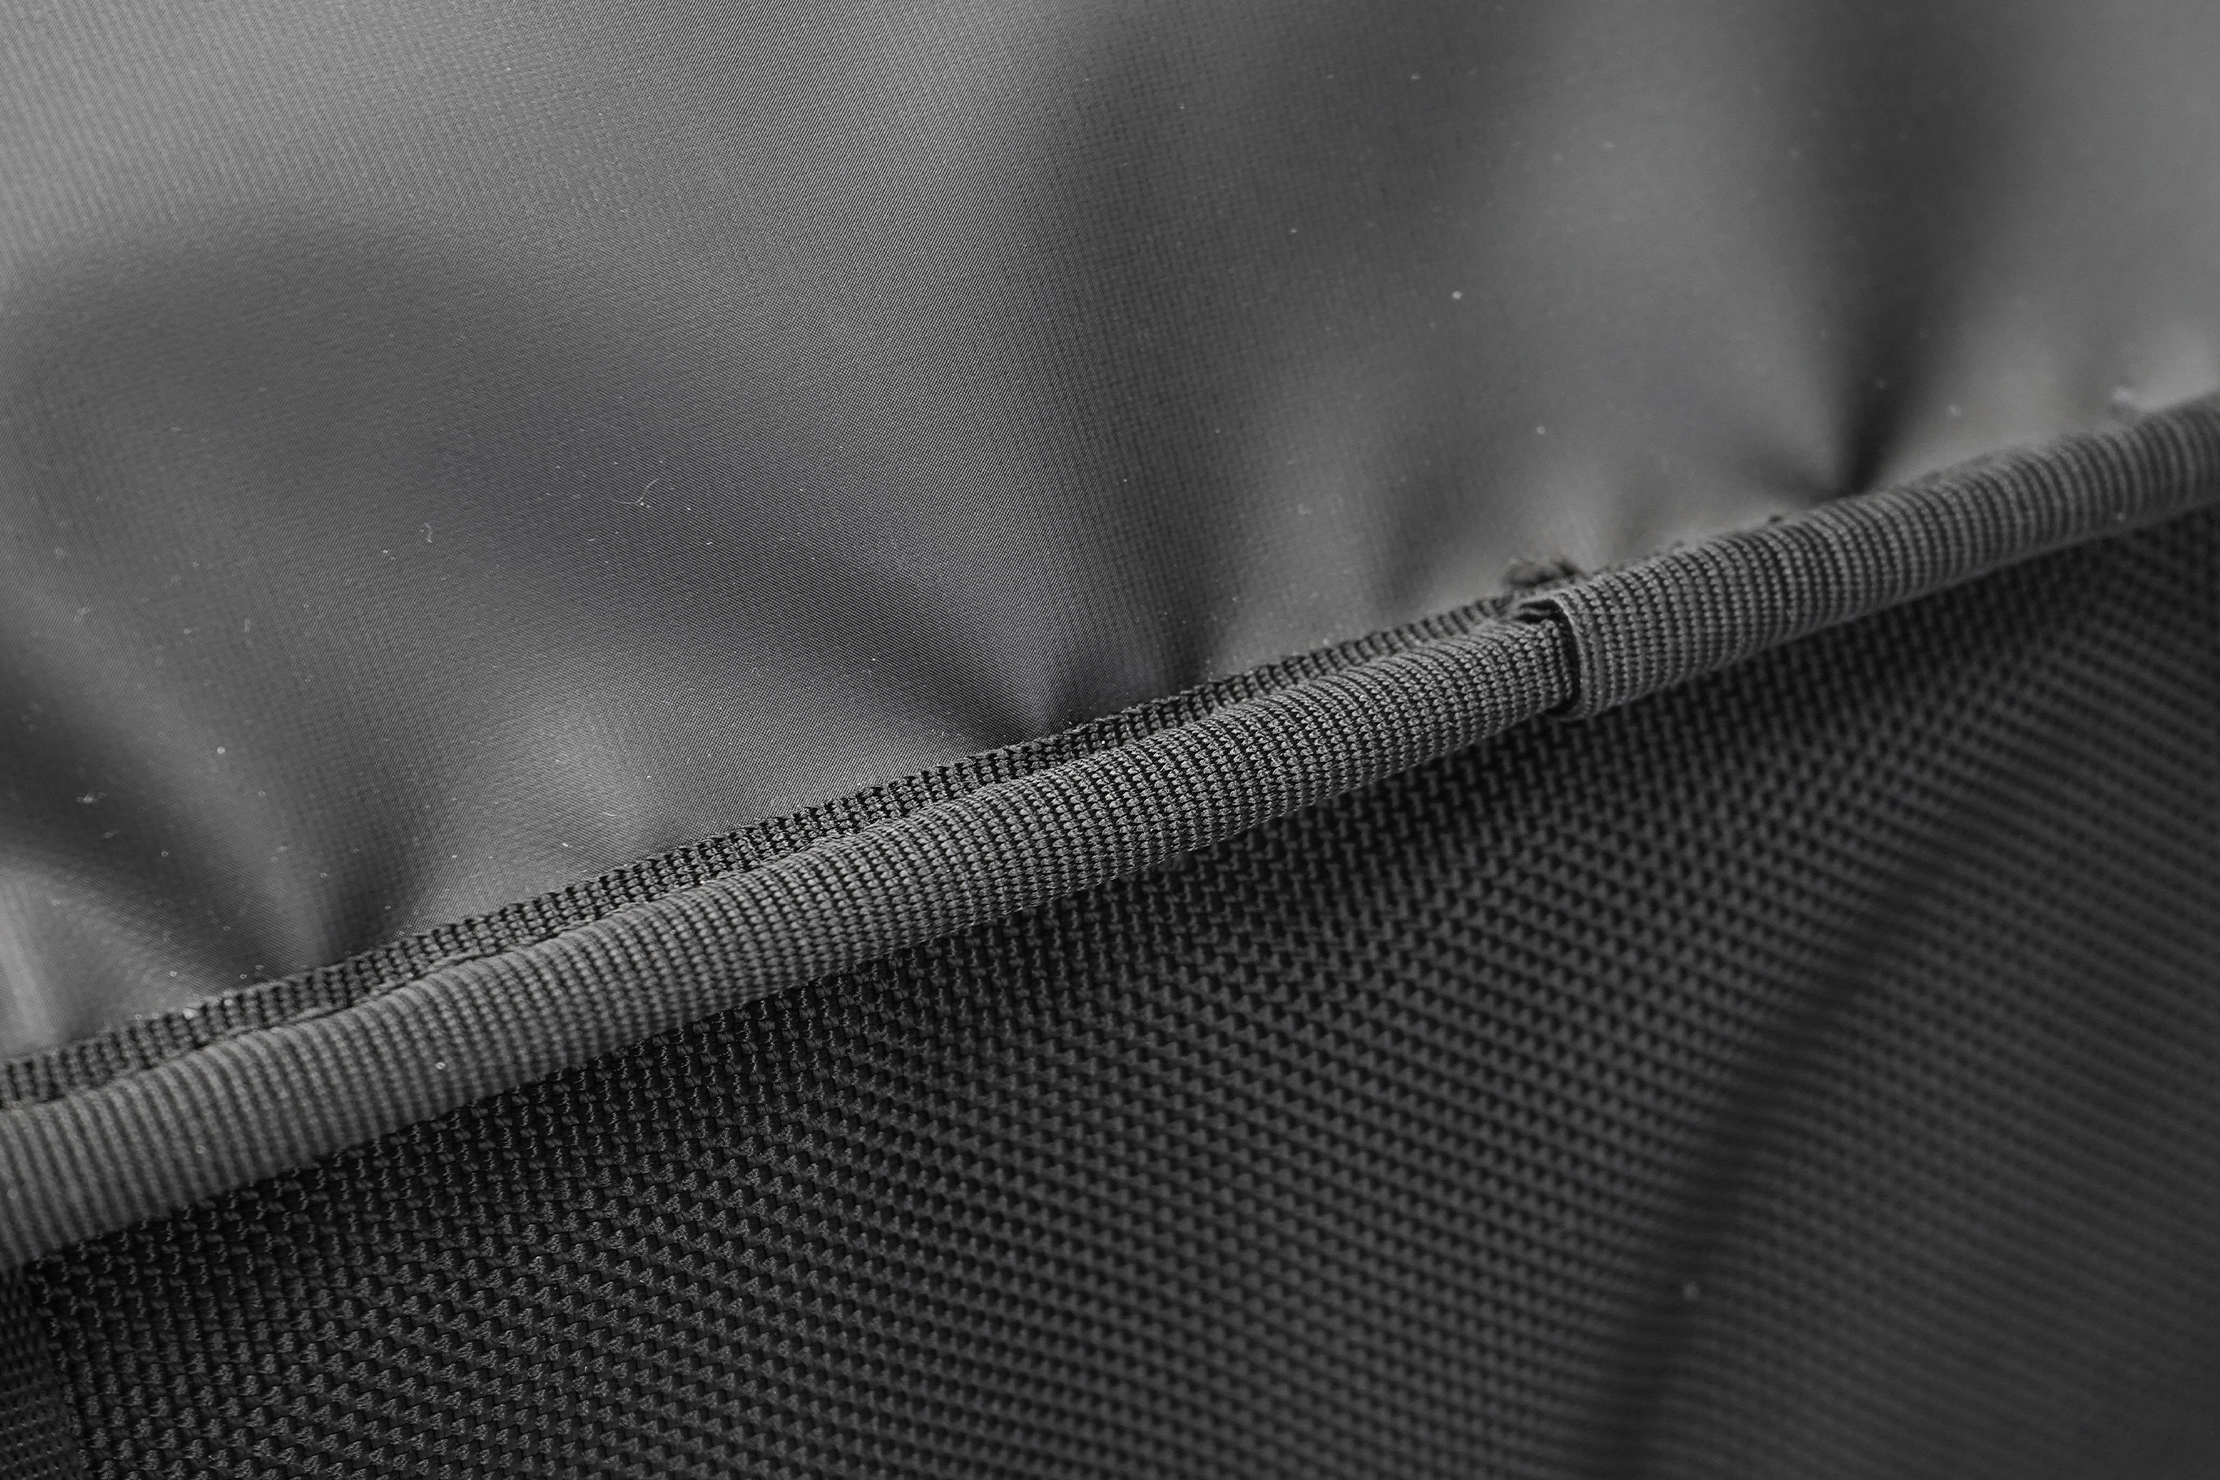 Chrome Industries Vega 2.0 Transit Brief   It's not the cleanest aesthetic, but there's no disputing the toughness of tarpaulin and nylon